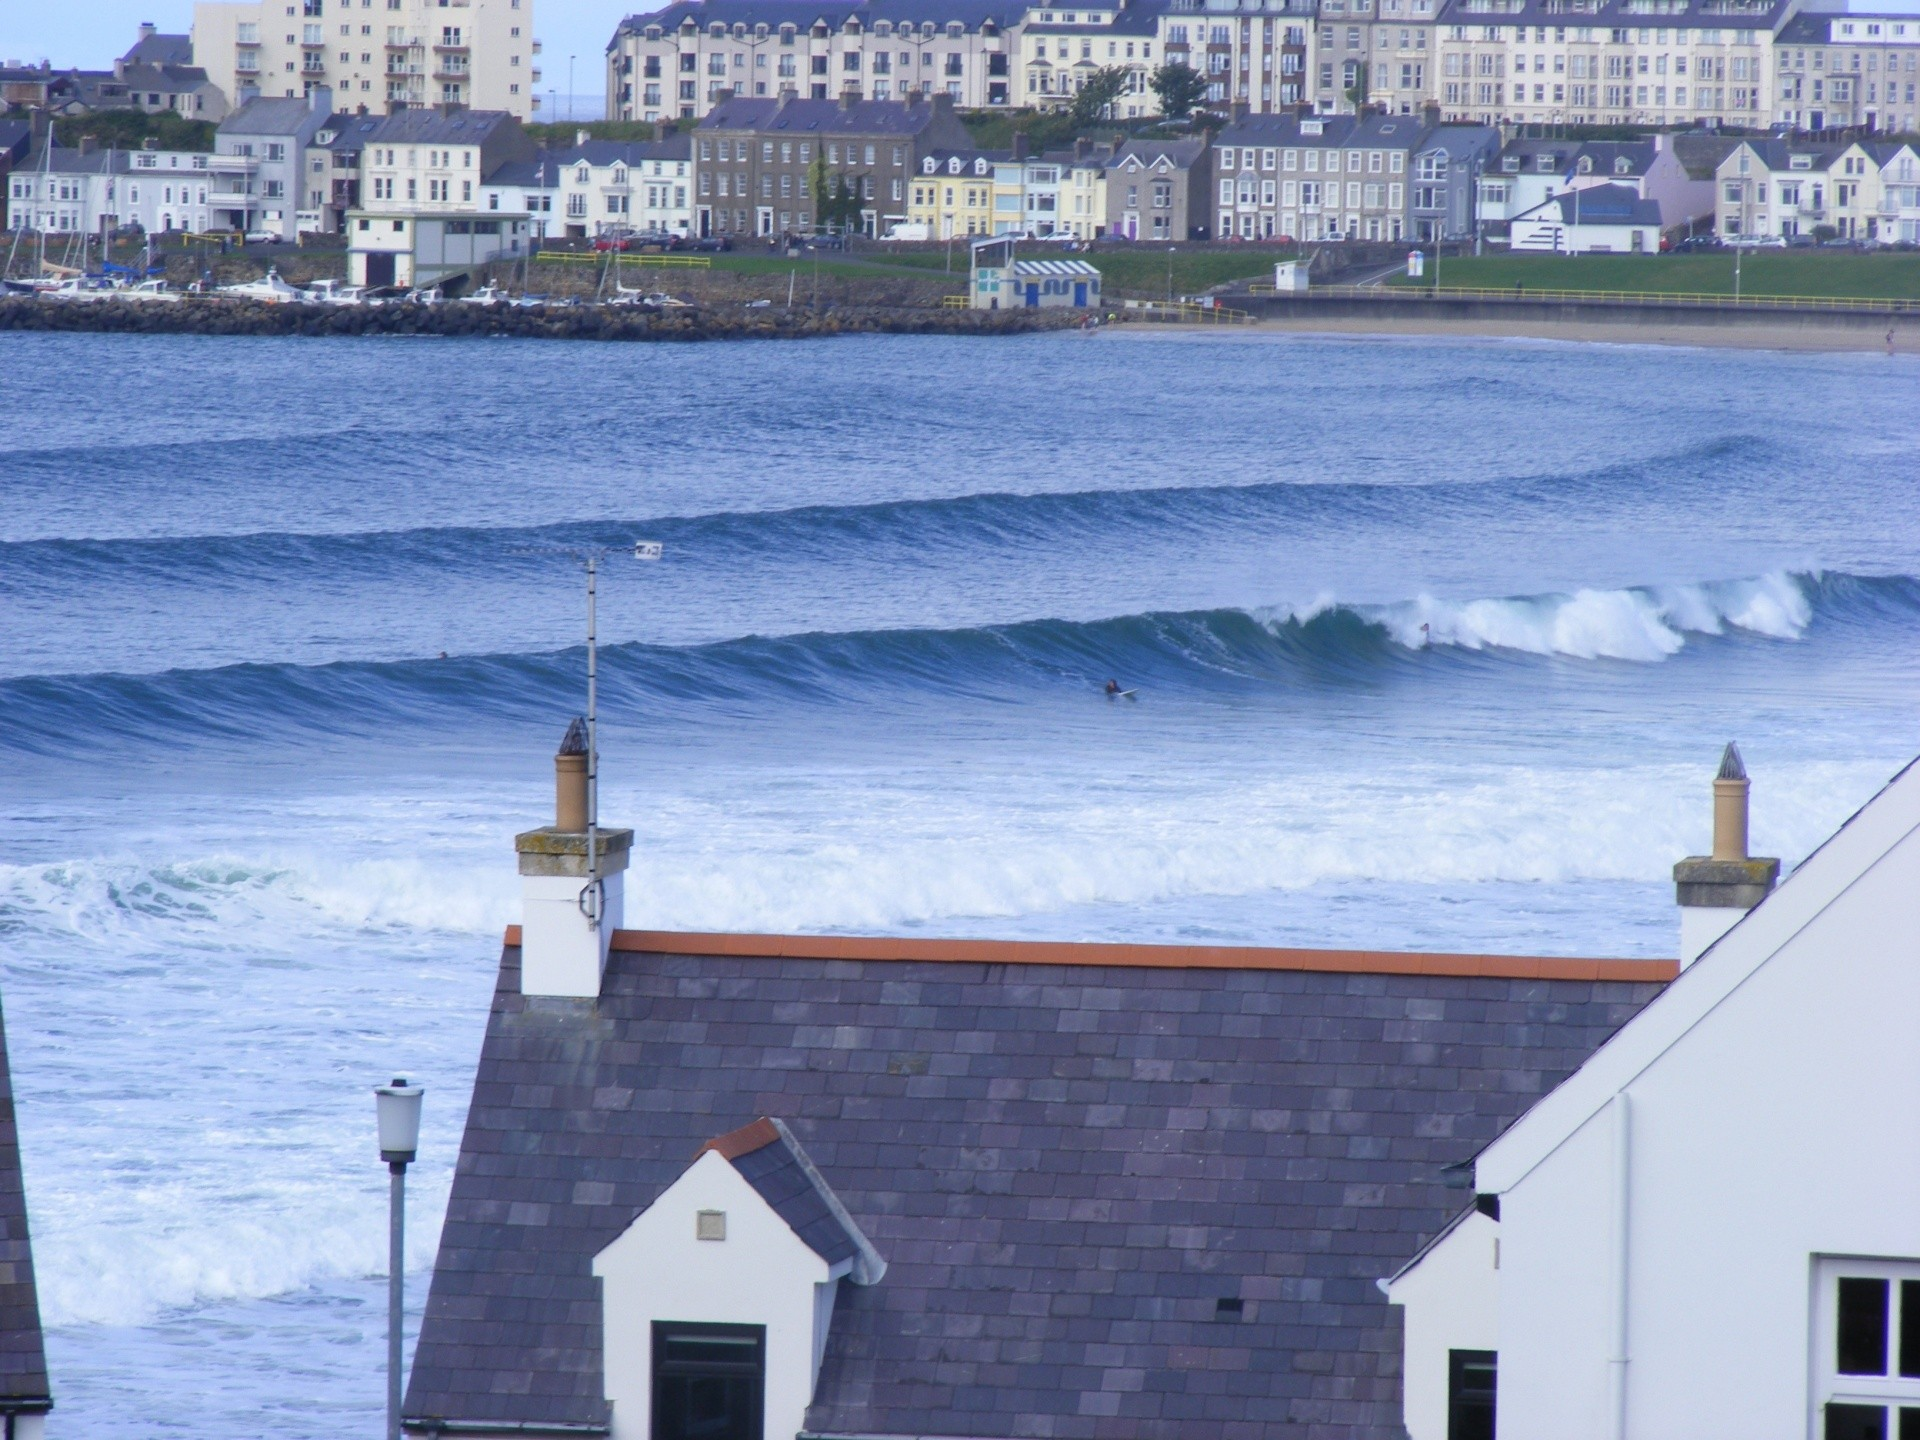 kaduna's photo of Portrush